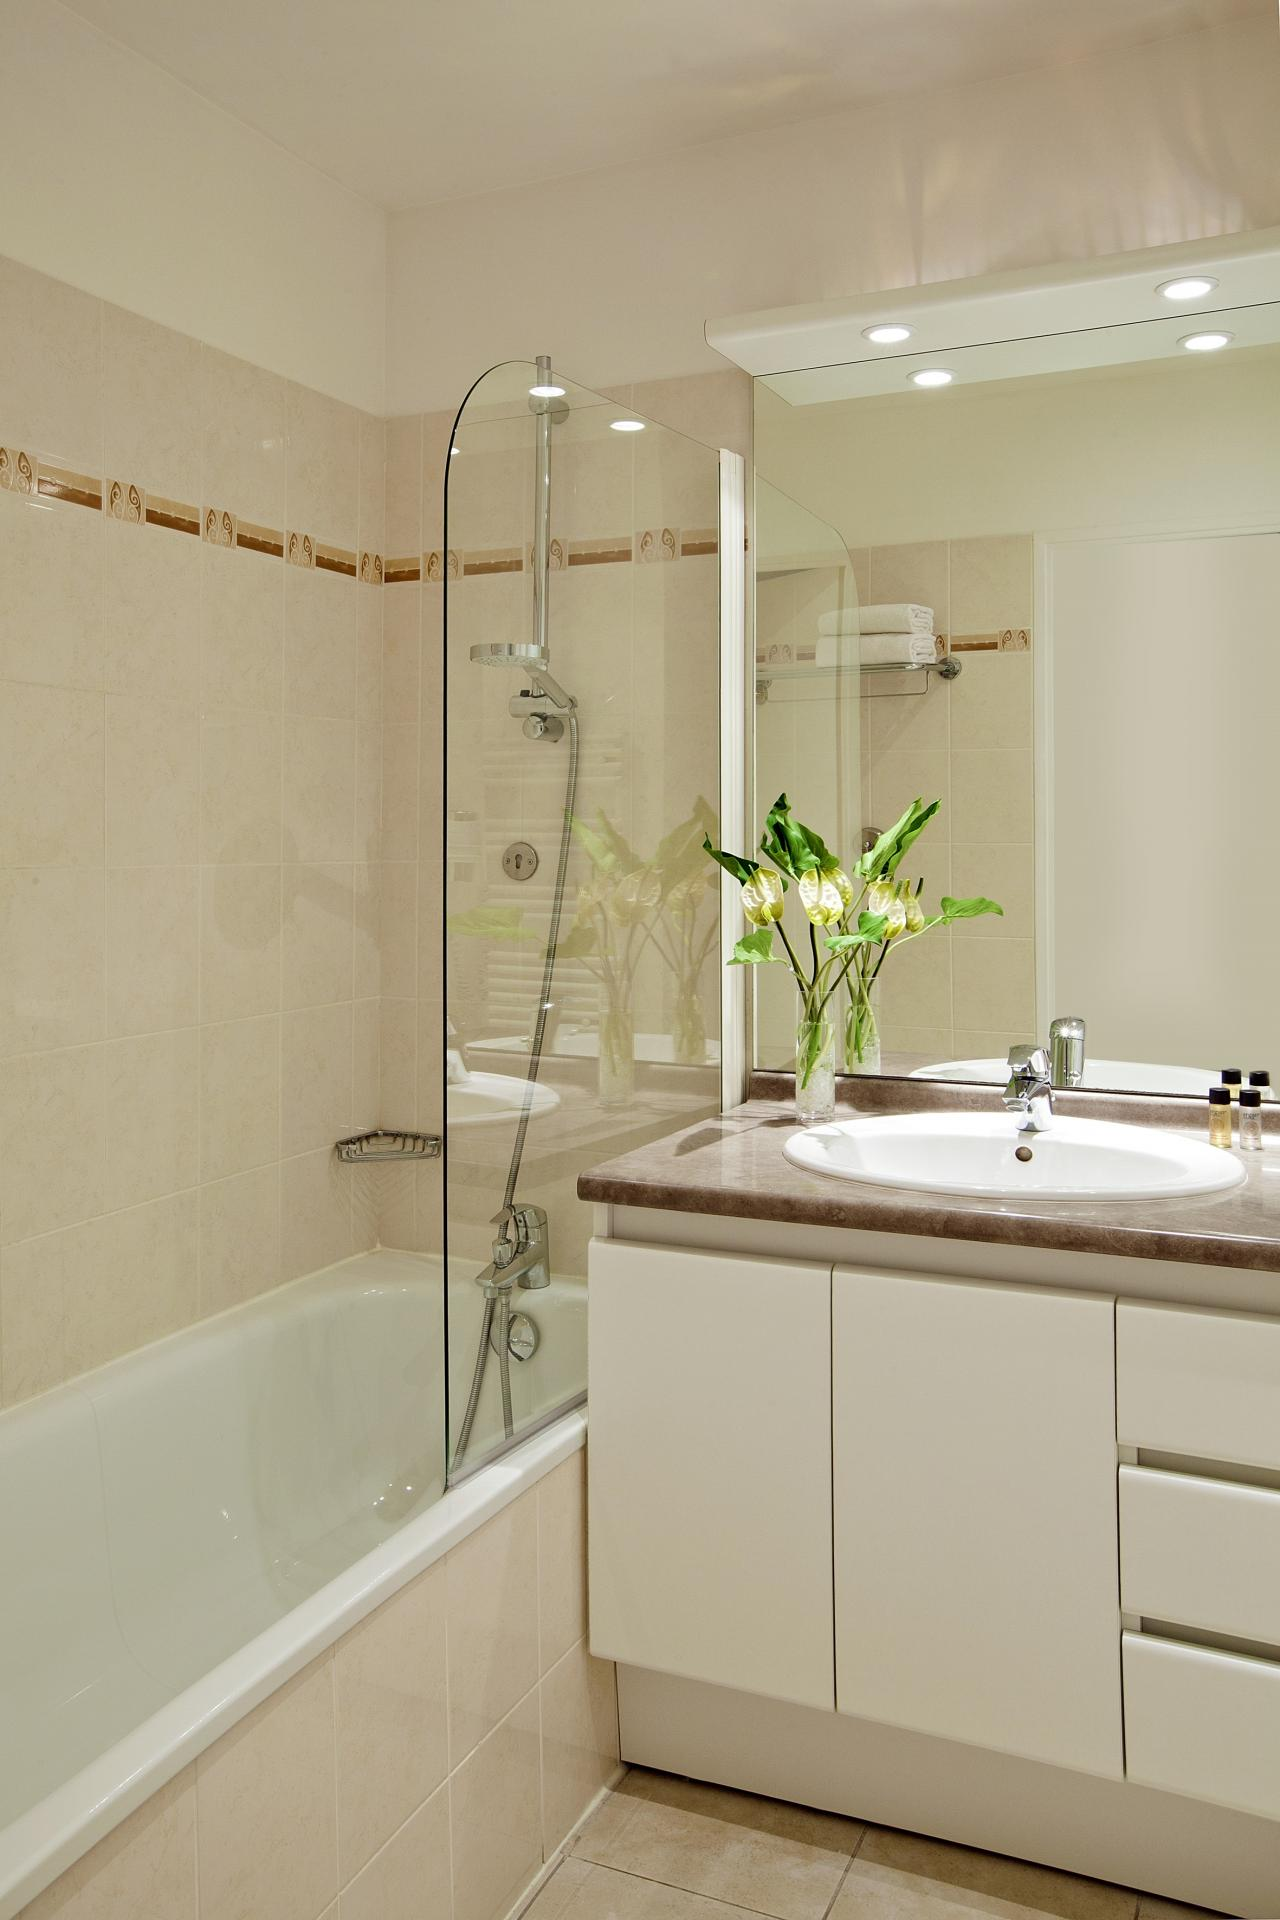 Bathroom at Residhome Bois Colombes Monceau Apartments - Citybase Apartments